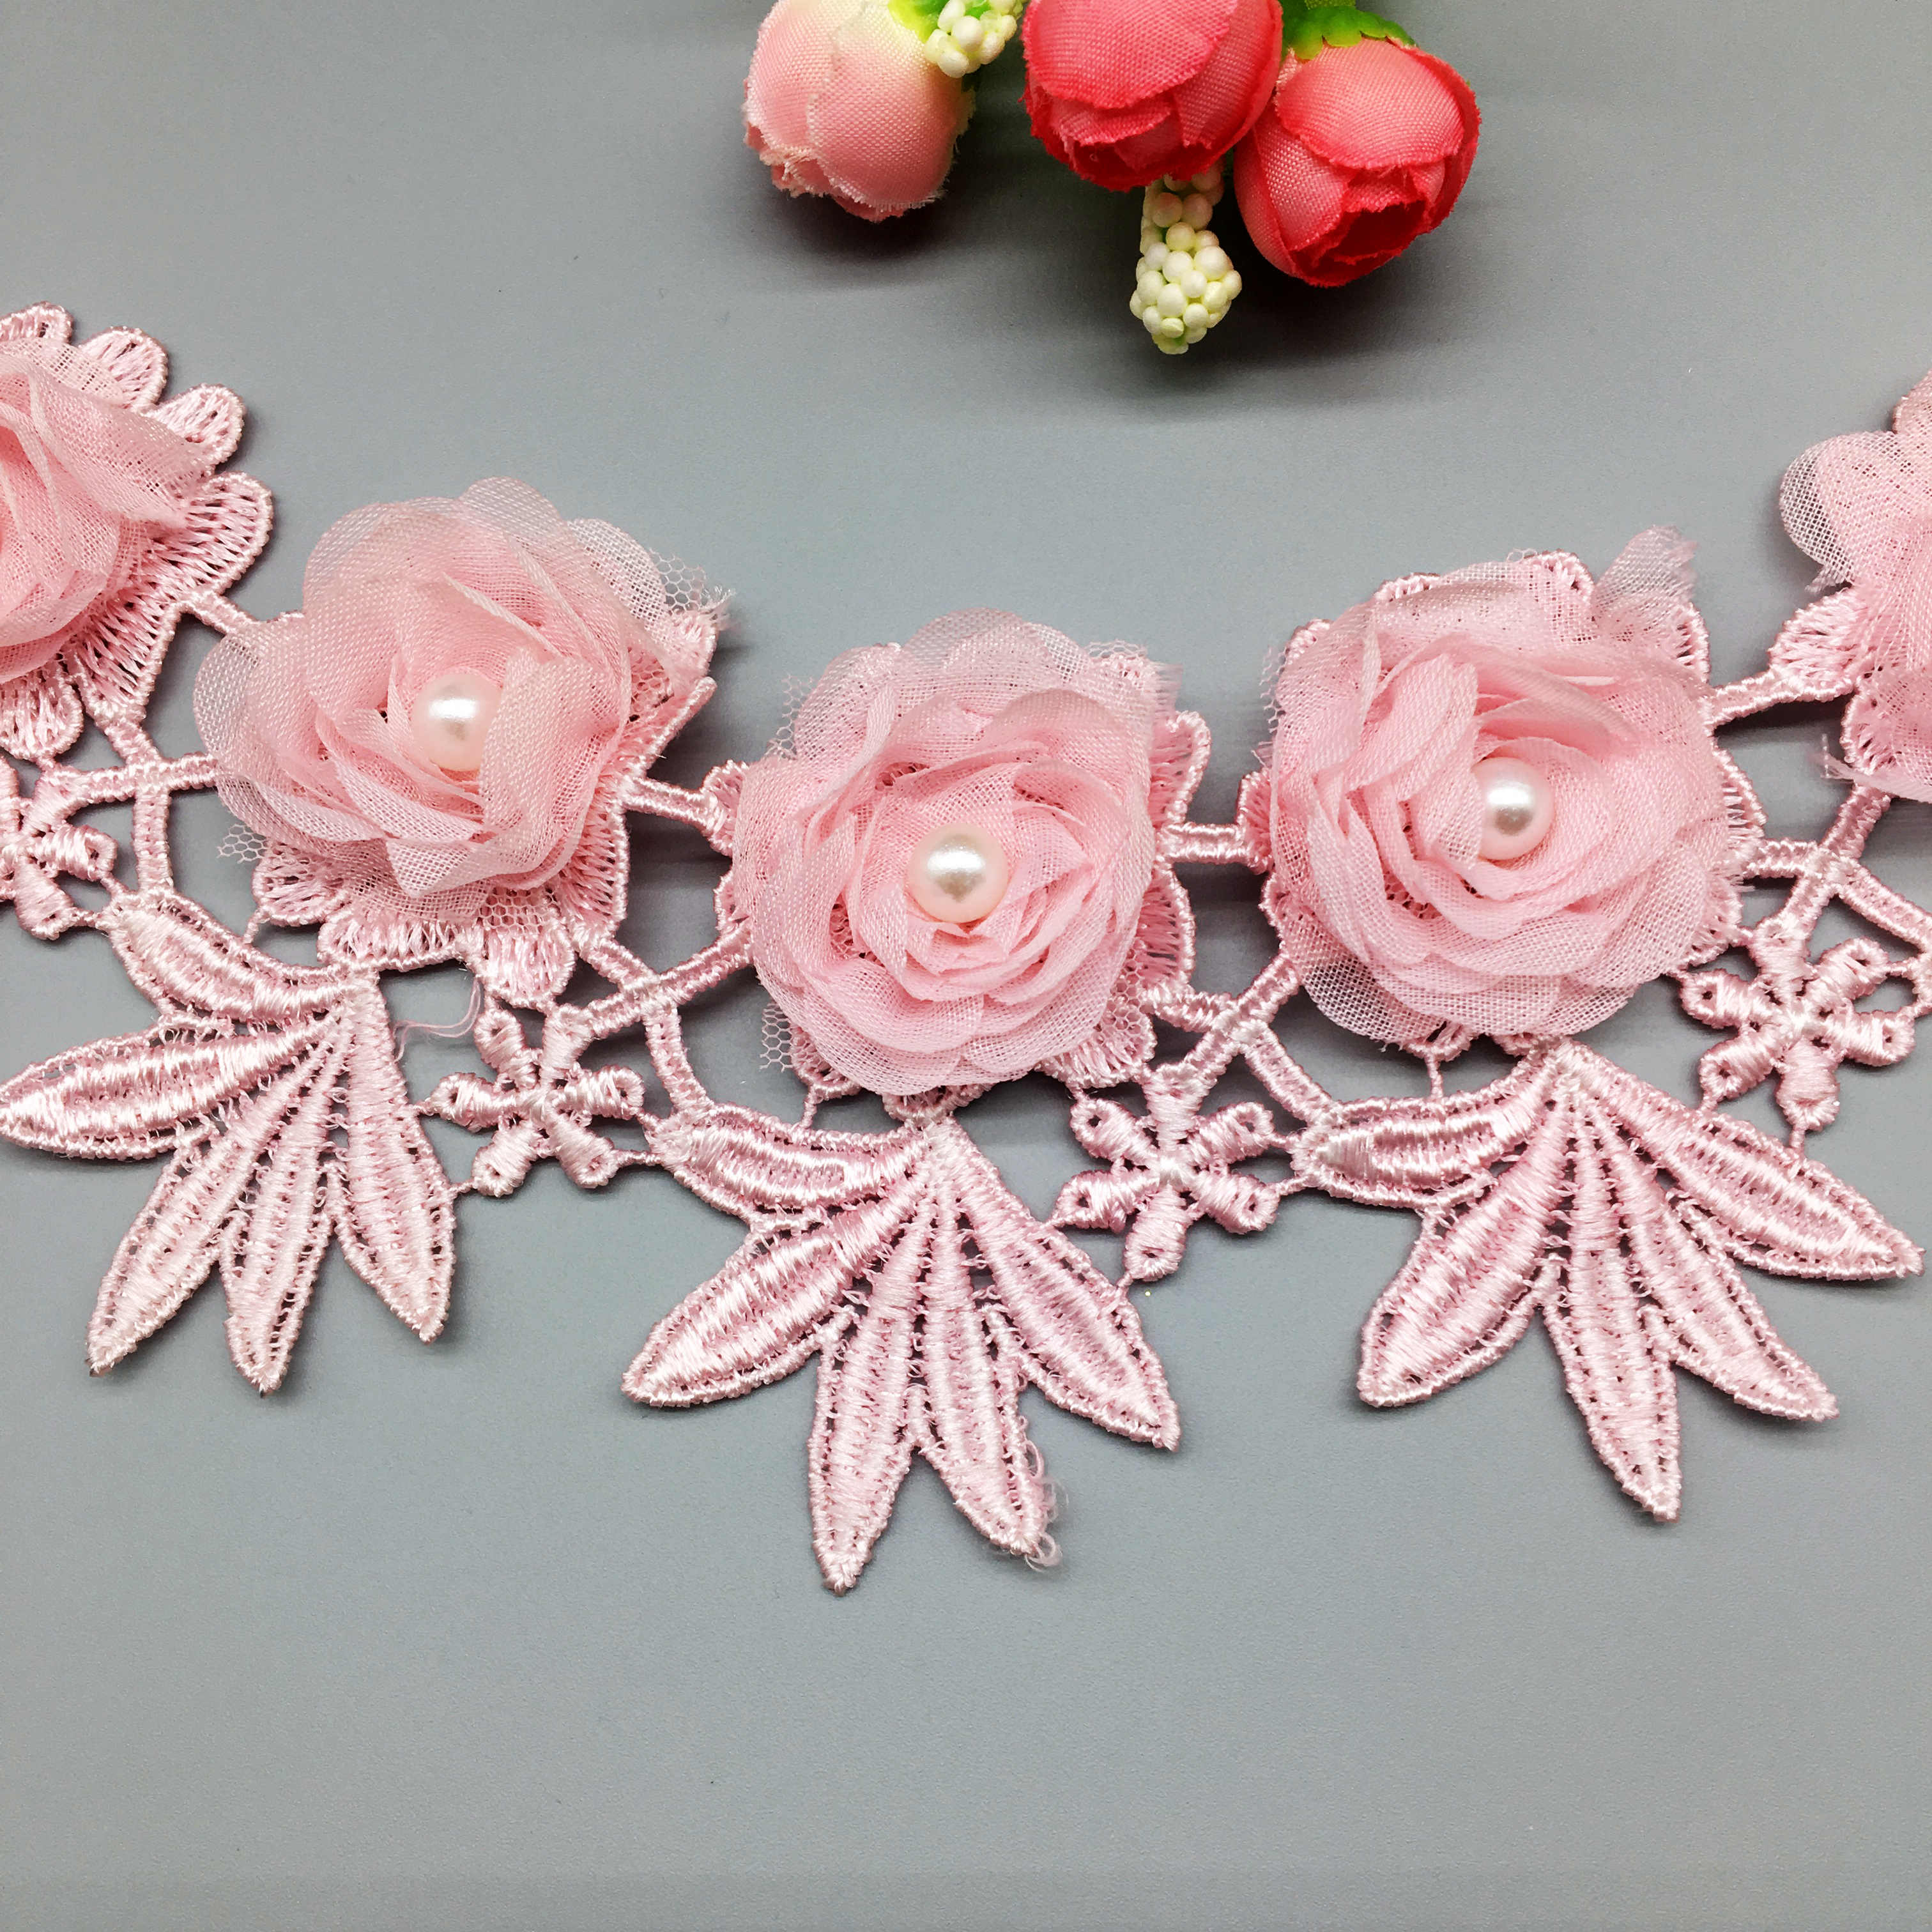 1yd Flower Pearl Lace Edge Trim Wedding Ribbon Embroidered Applique Sewing Patch